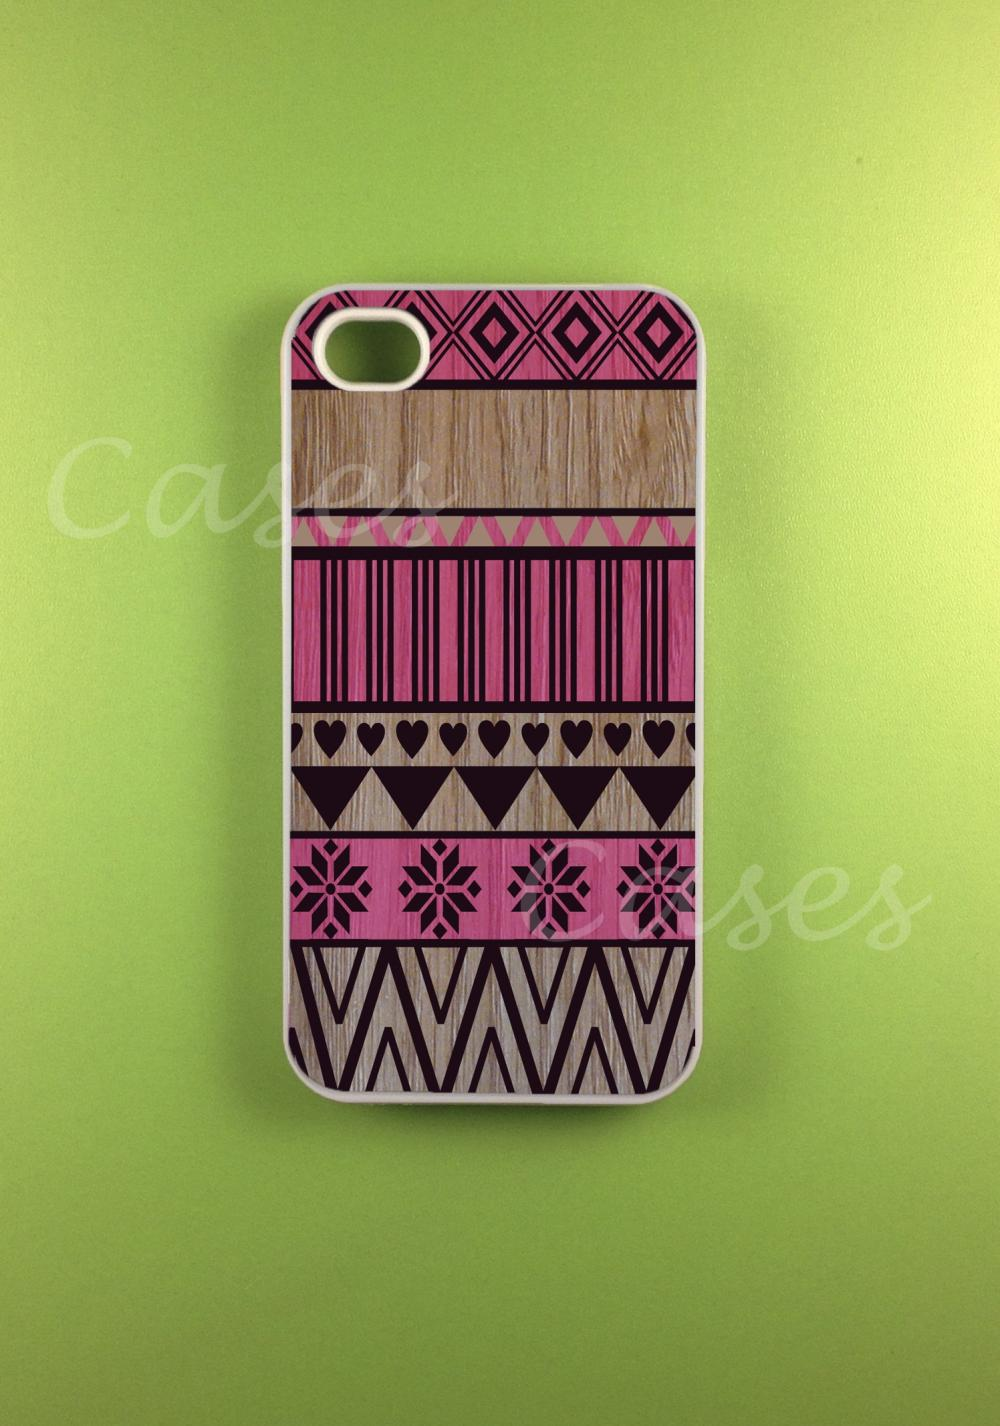 Aztec Iphone 4 Case - Pink Aztec on Wood Print Iphone Case, Iphone 4s Case